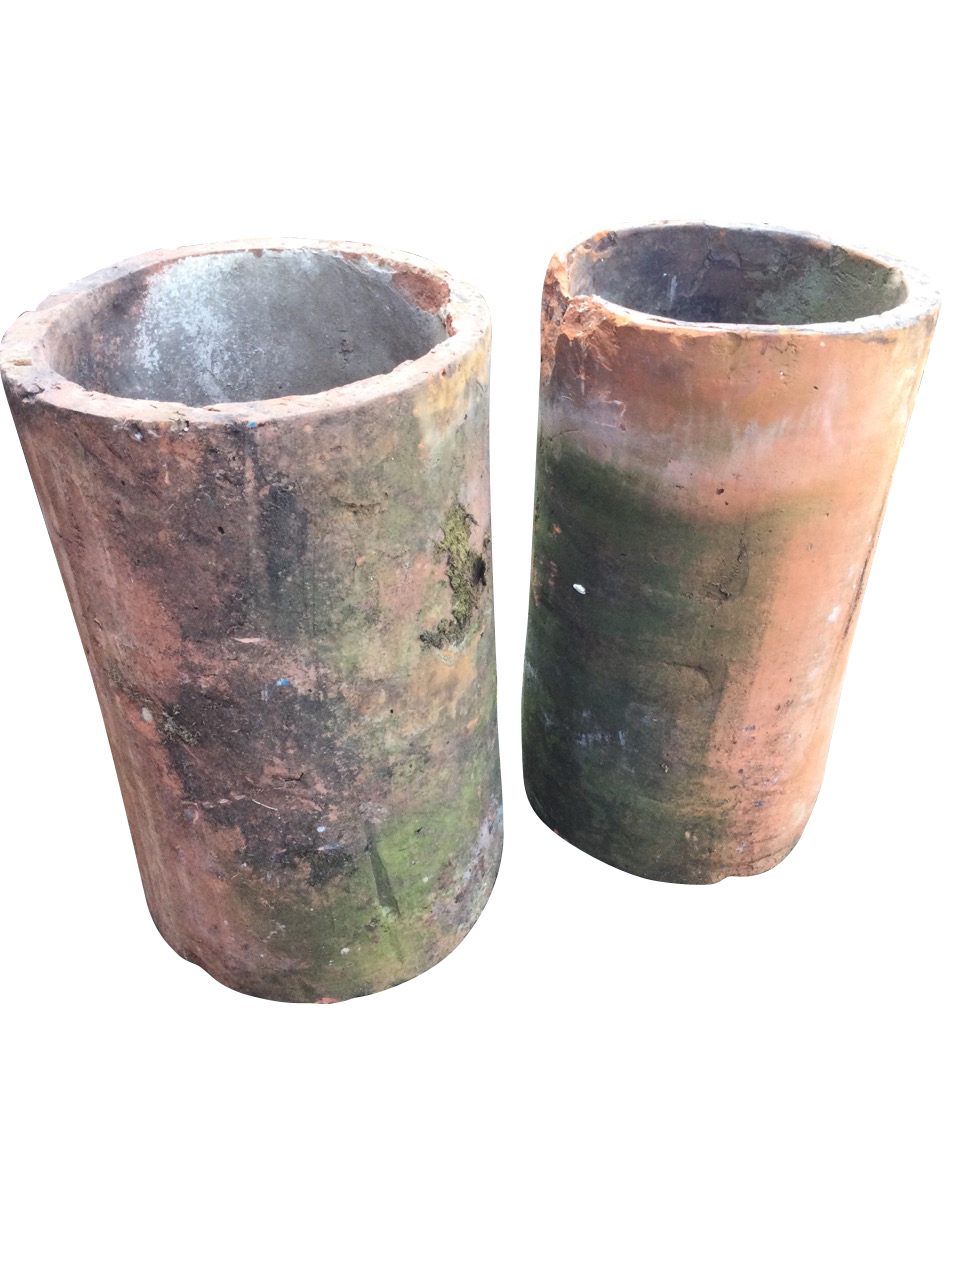 A pair of large tubular terracotta pipes - used as garden planters. (14in x 24in) (2)